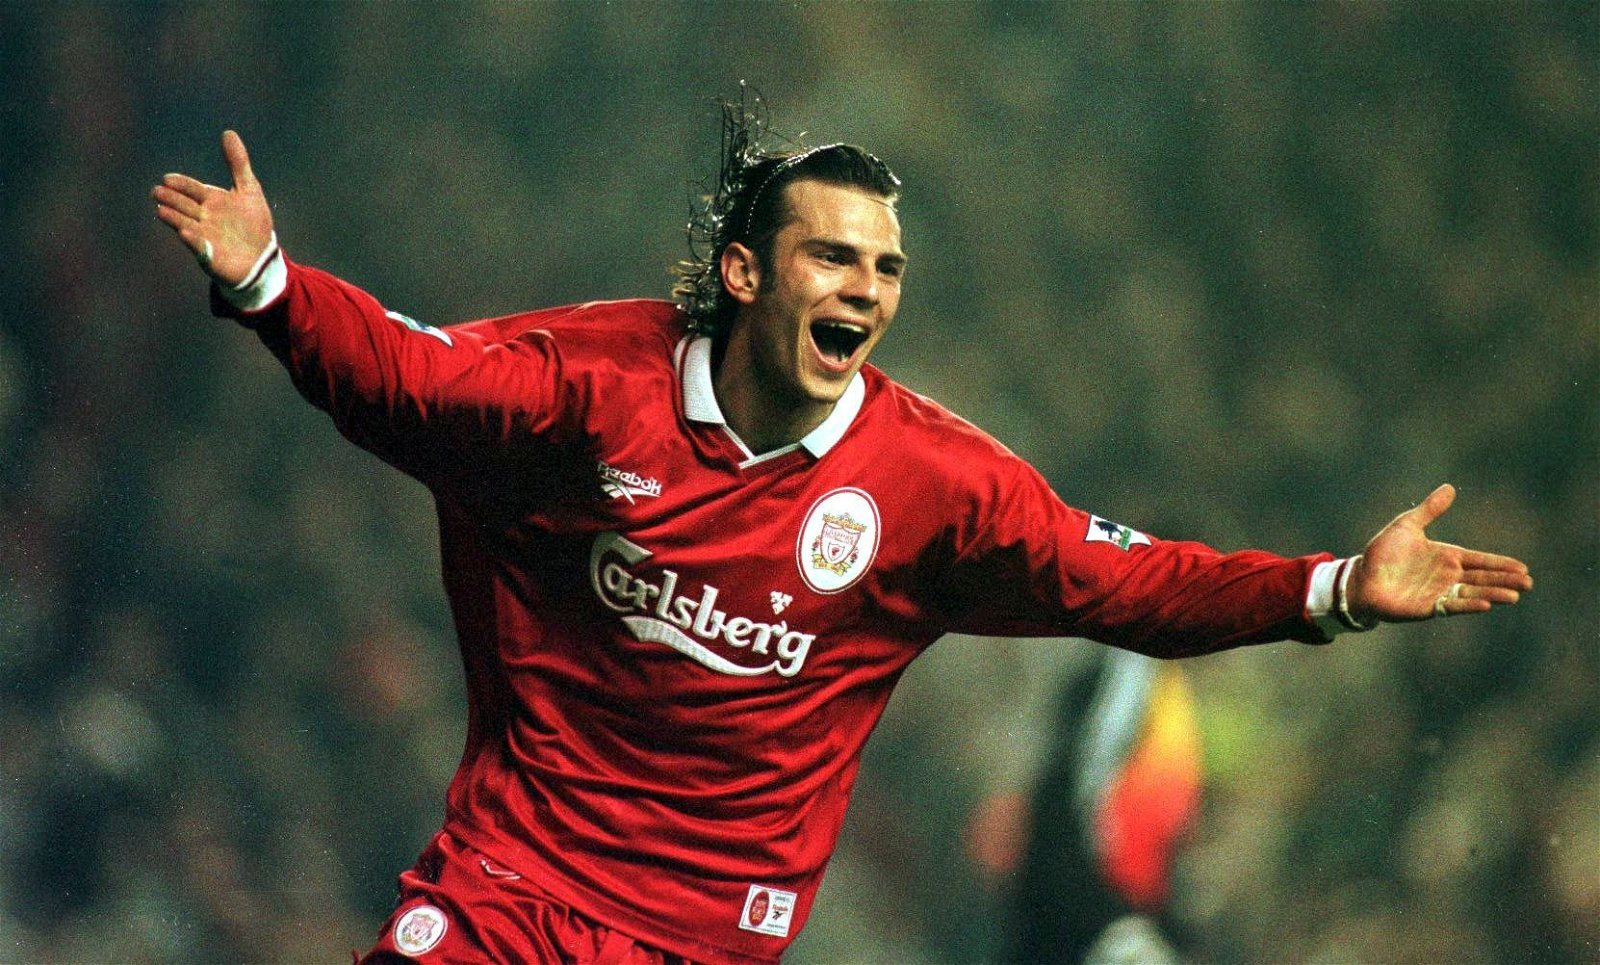 Liverpool's Patrik Berger celebrates scored against Newcastle